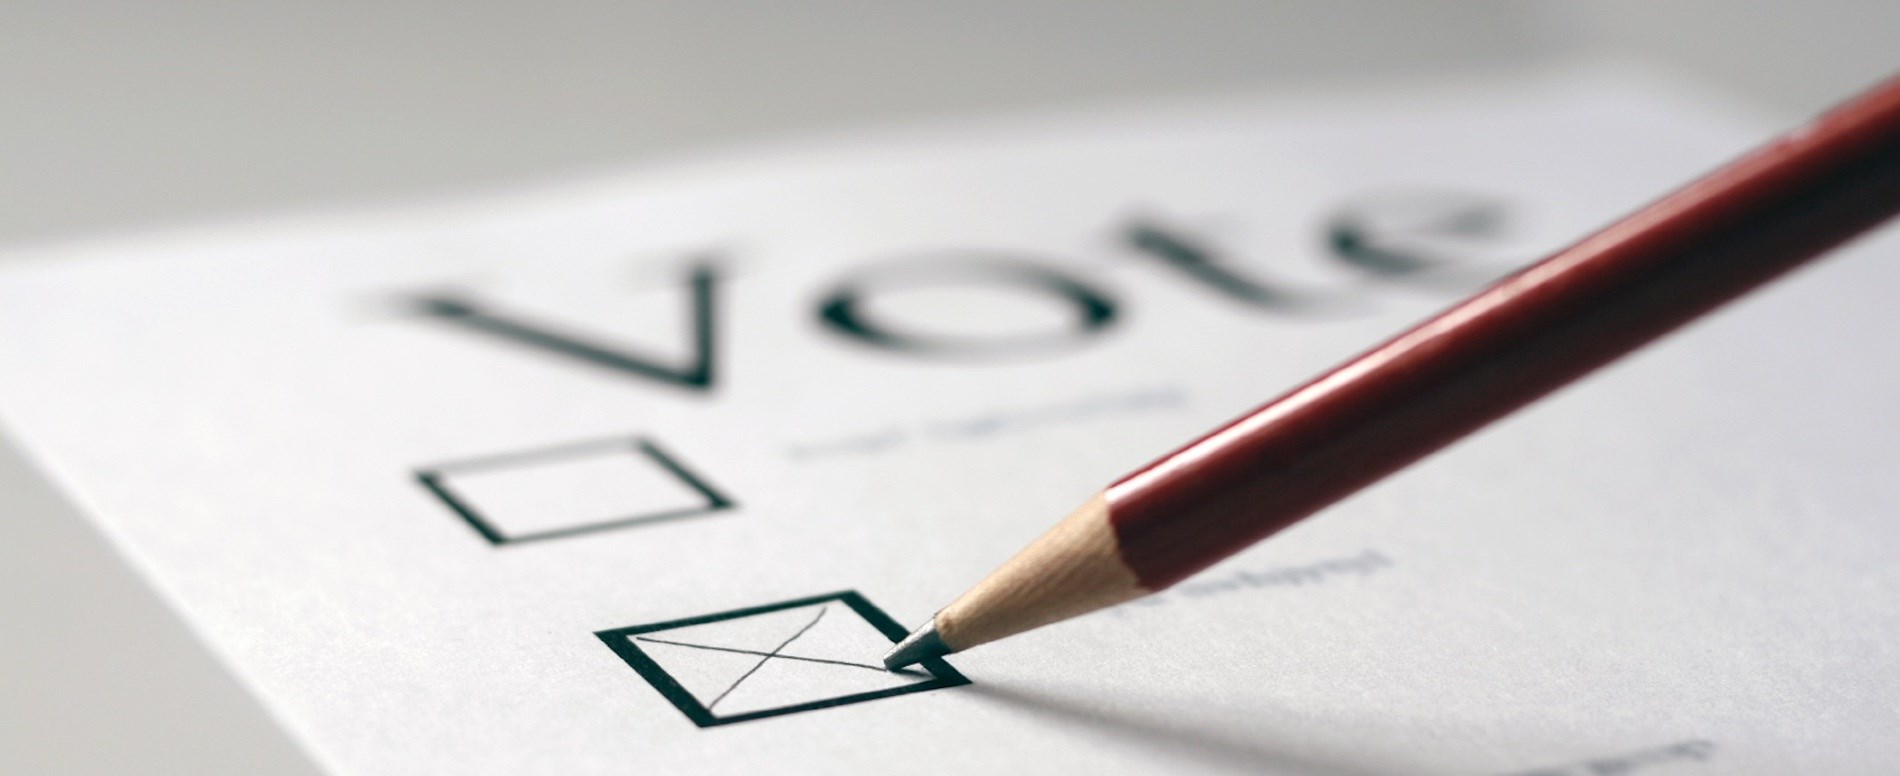 Pencil marking ballot